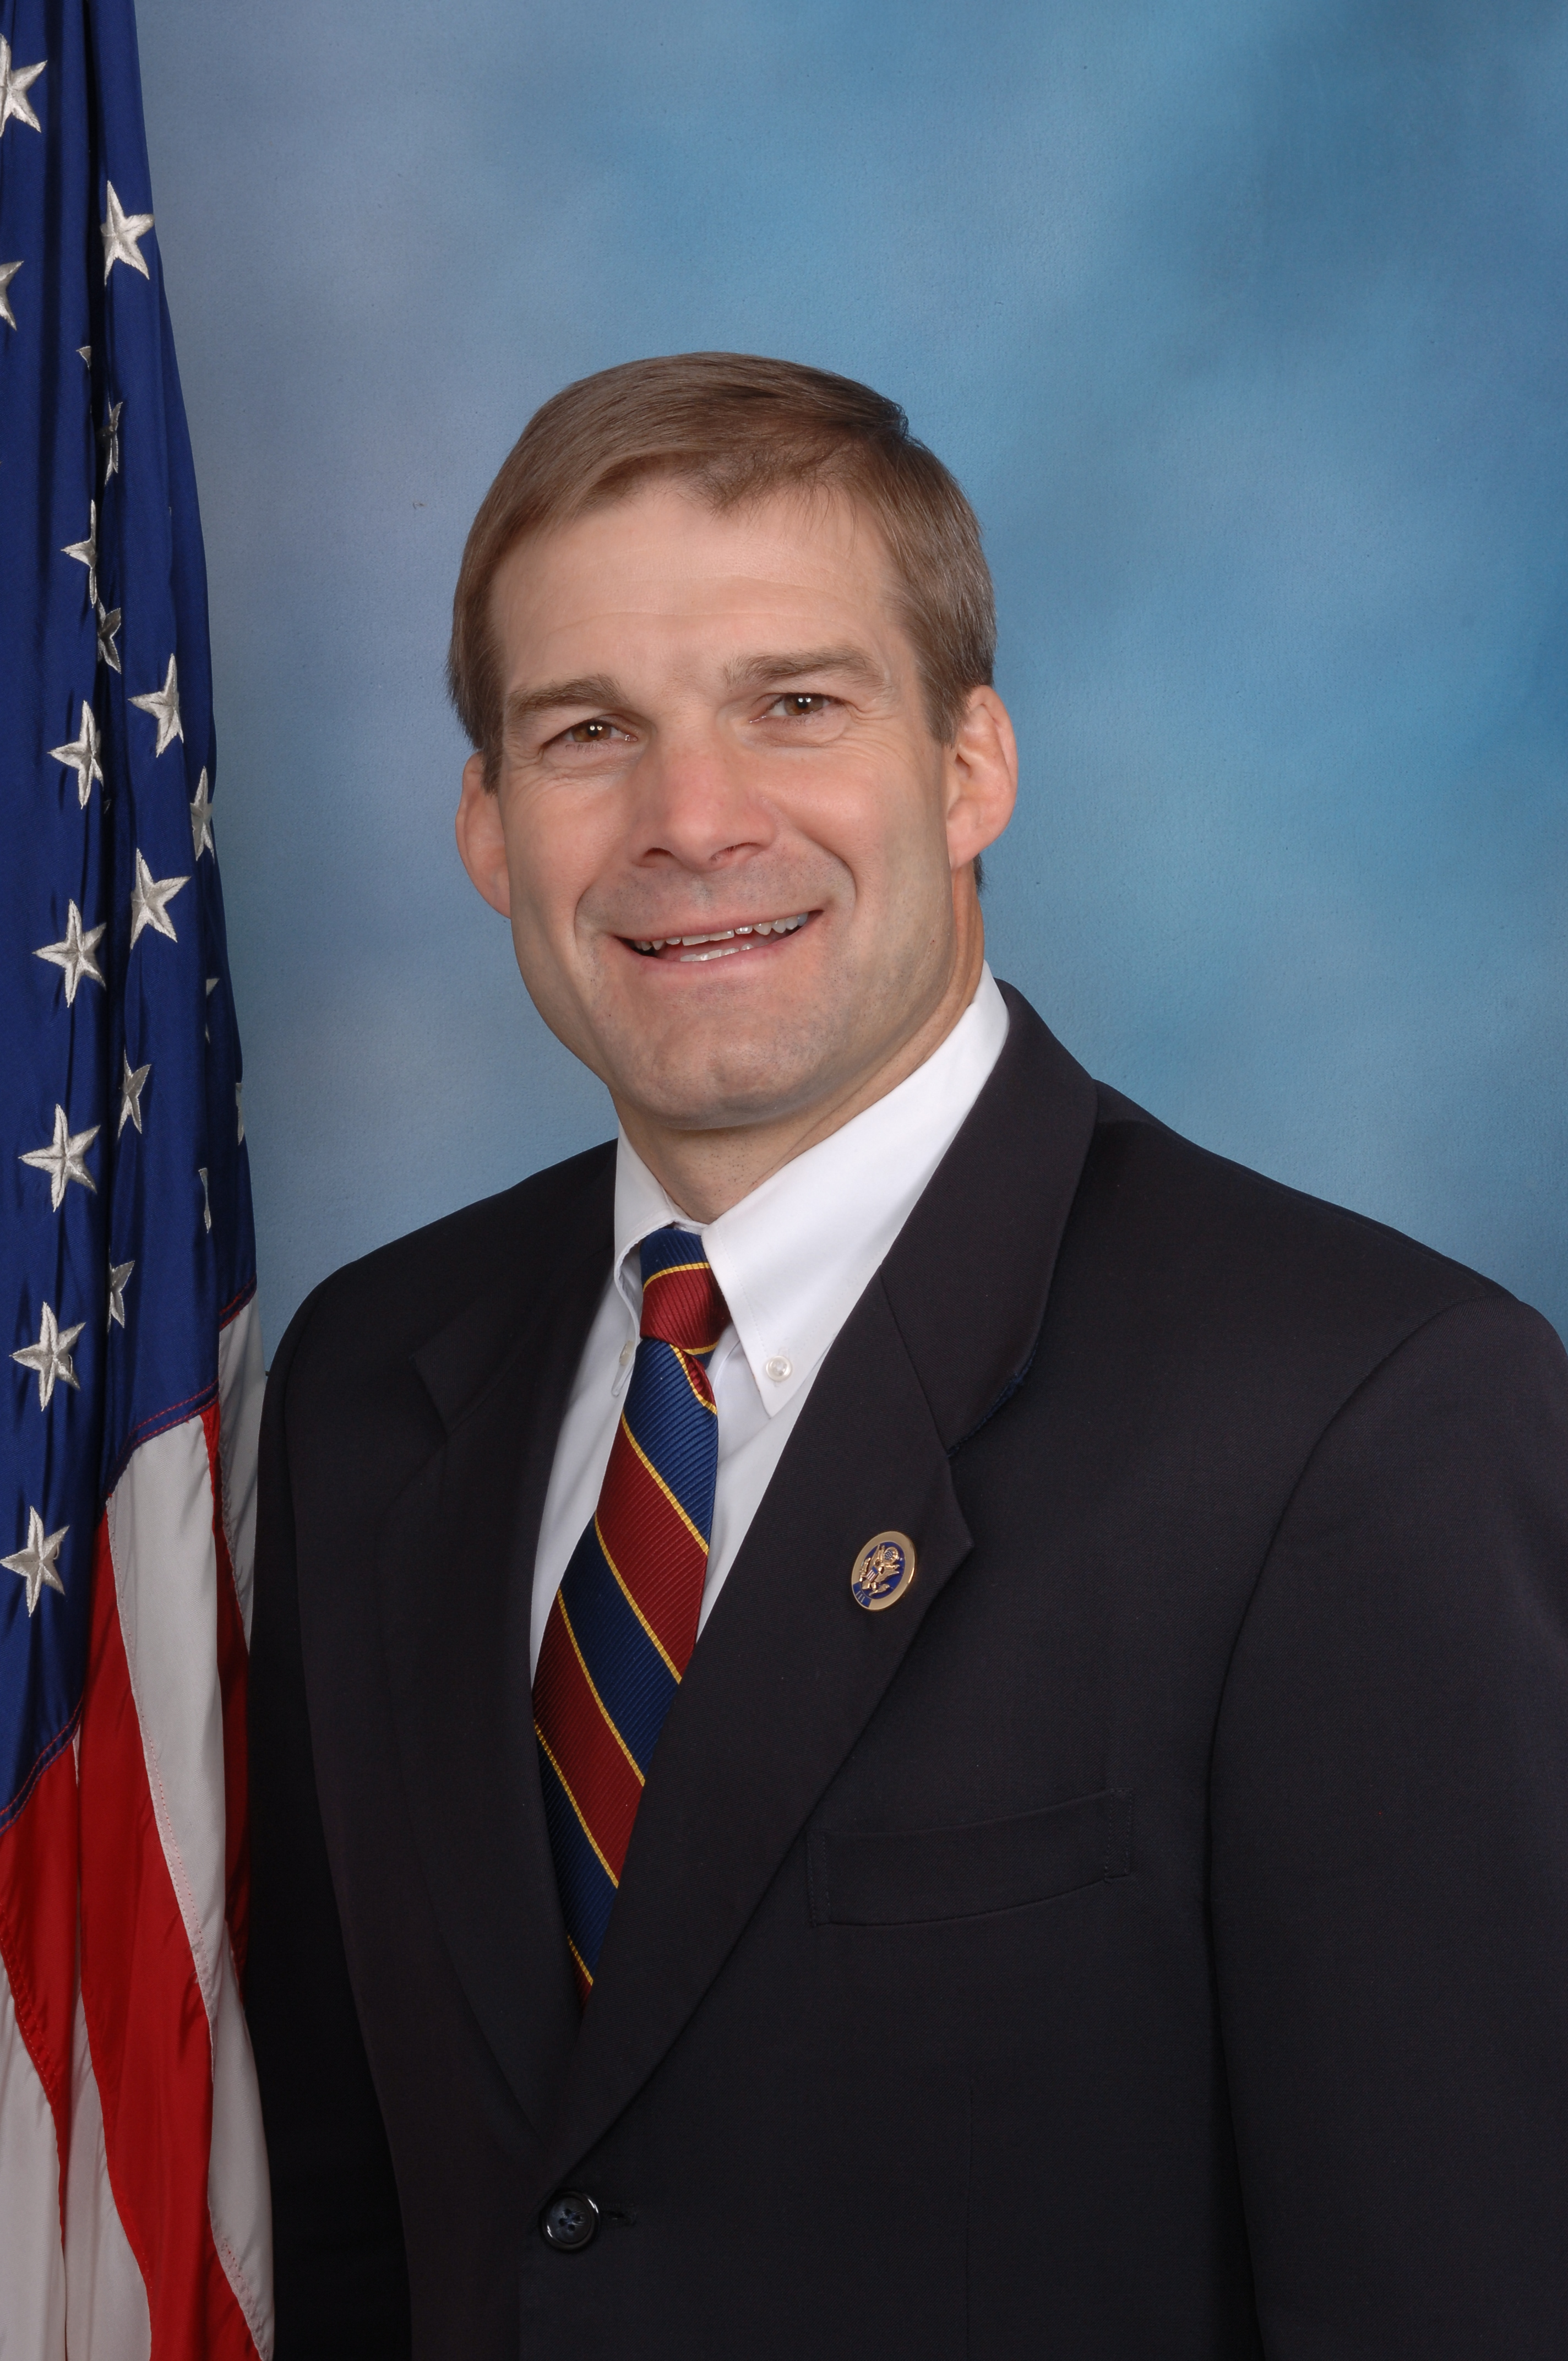 Jim_Jordan__Official_Portrait__112th_Congress.jpg